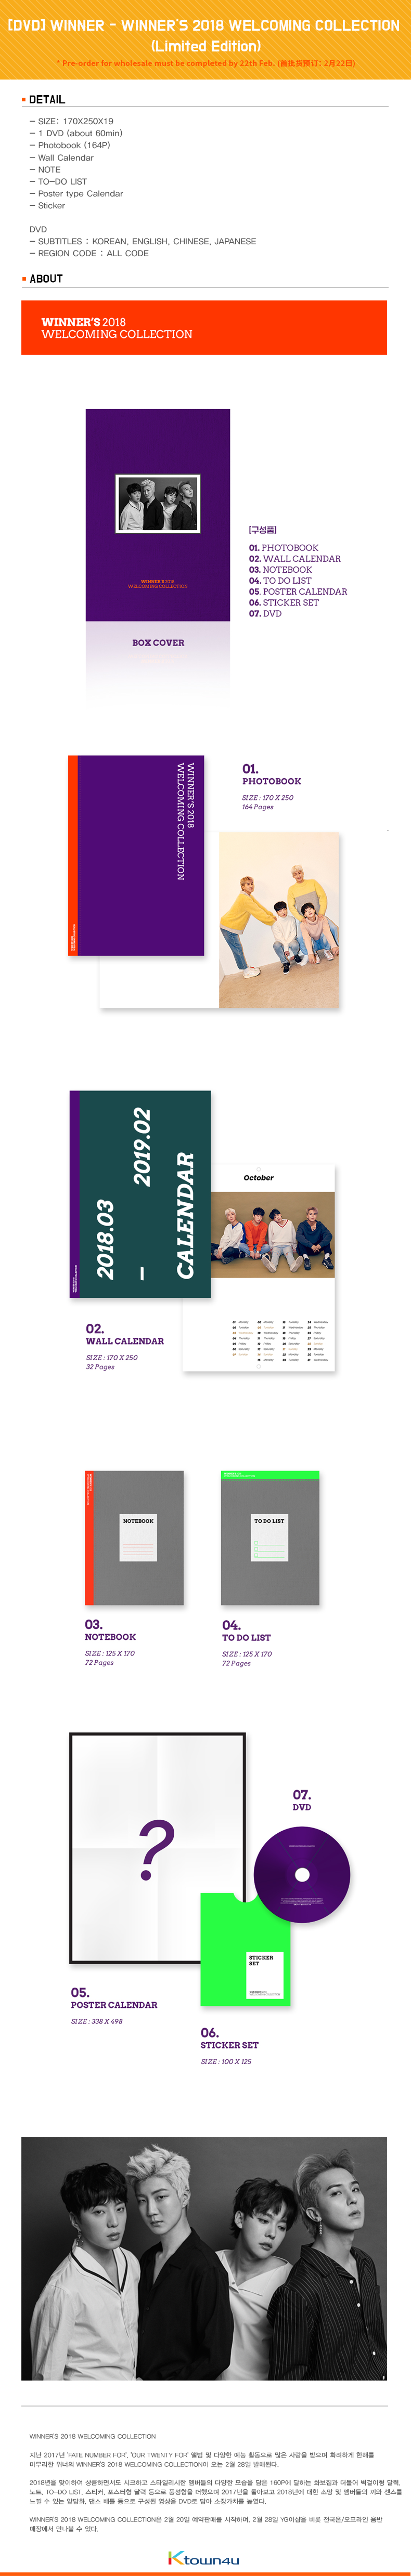 [DVD] WINNER - WINNER'S 2018 WELCOMING COLLECTION (Limited Edition)